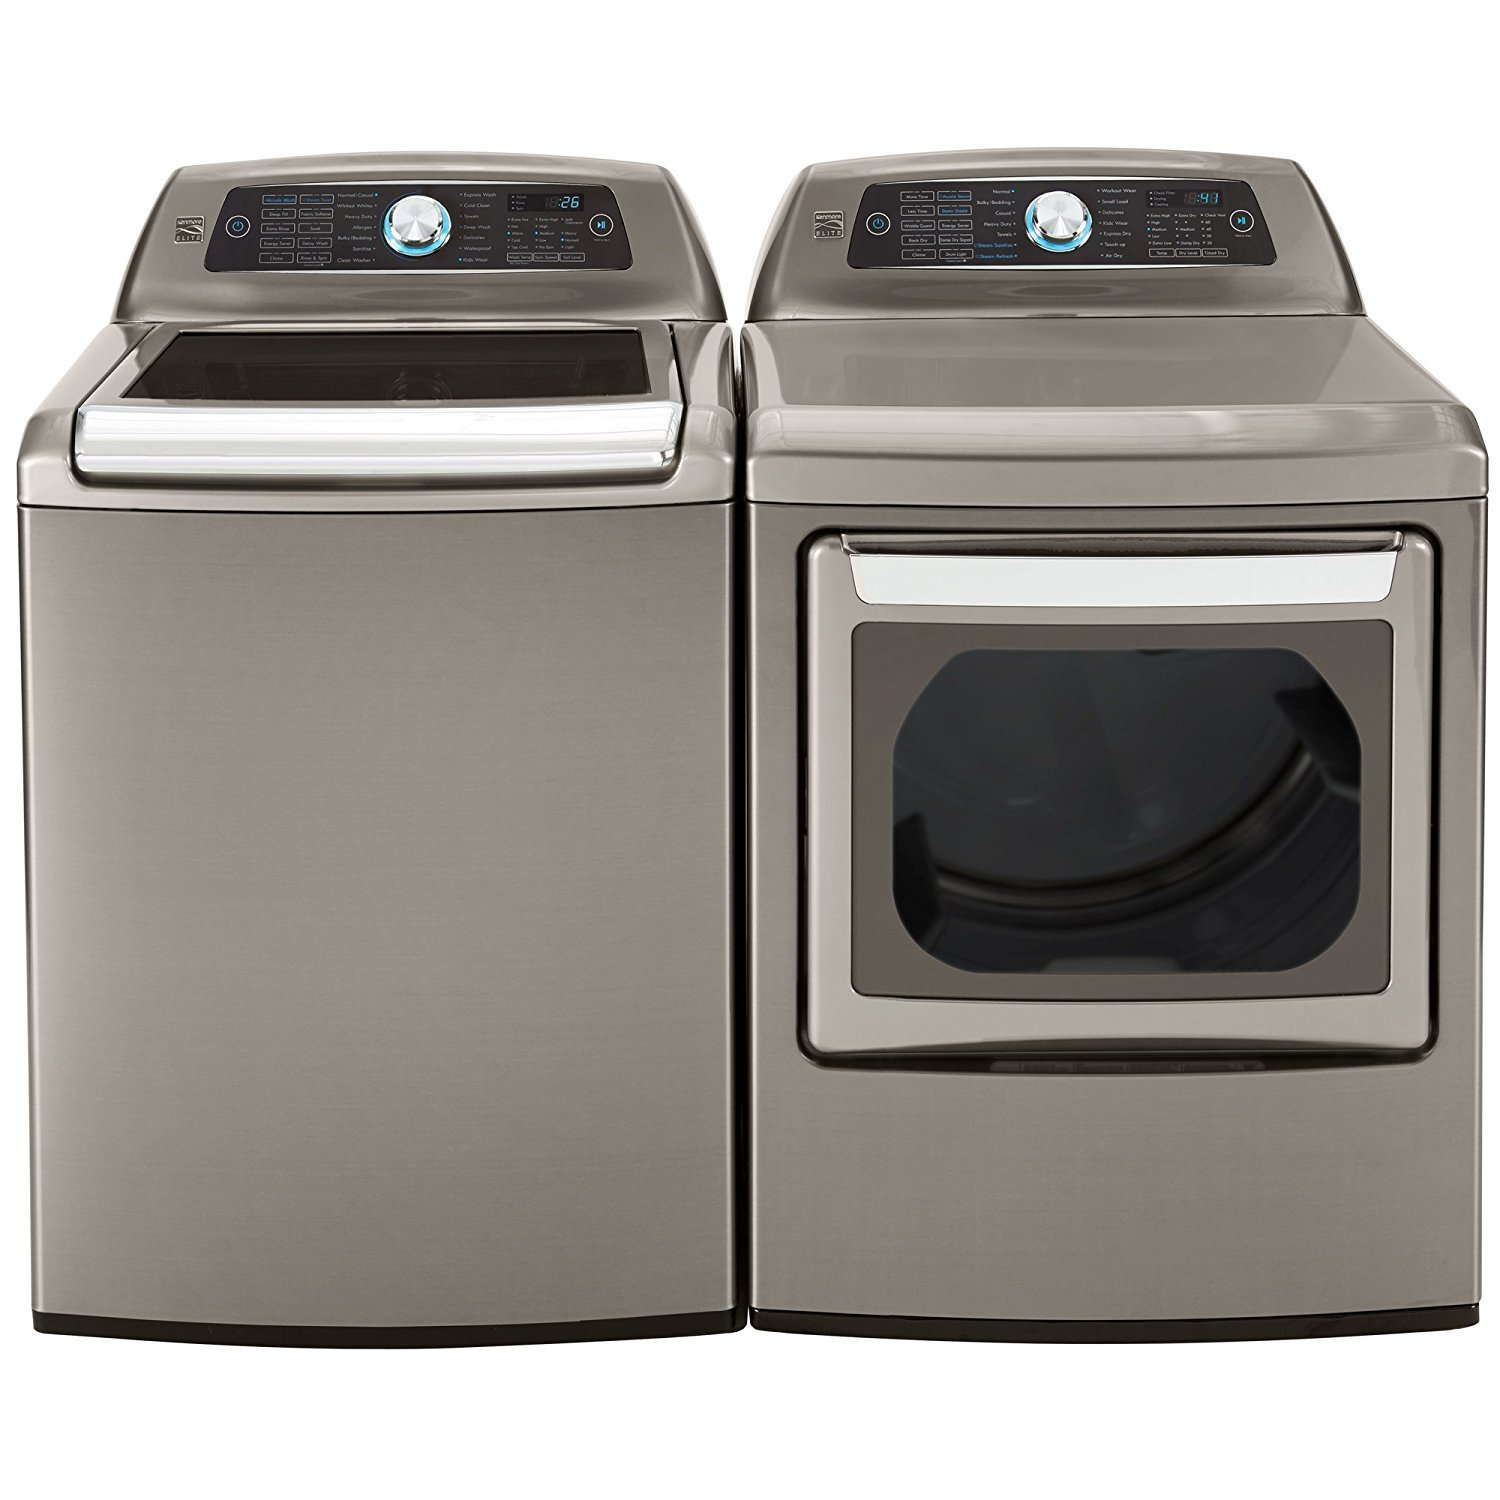 Price Mistake? Kenmore Washers And Dryers On Sale From